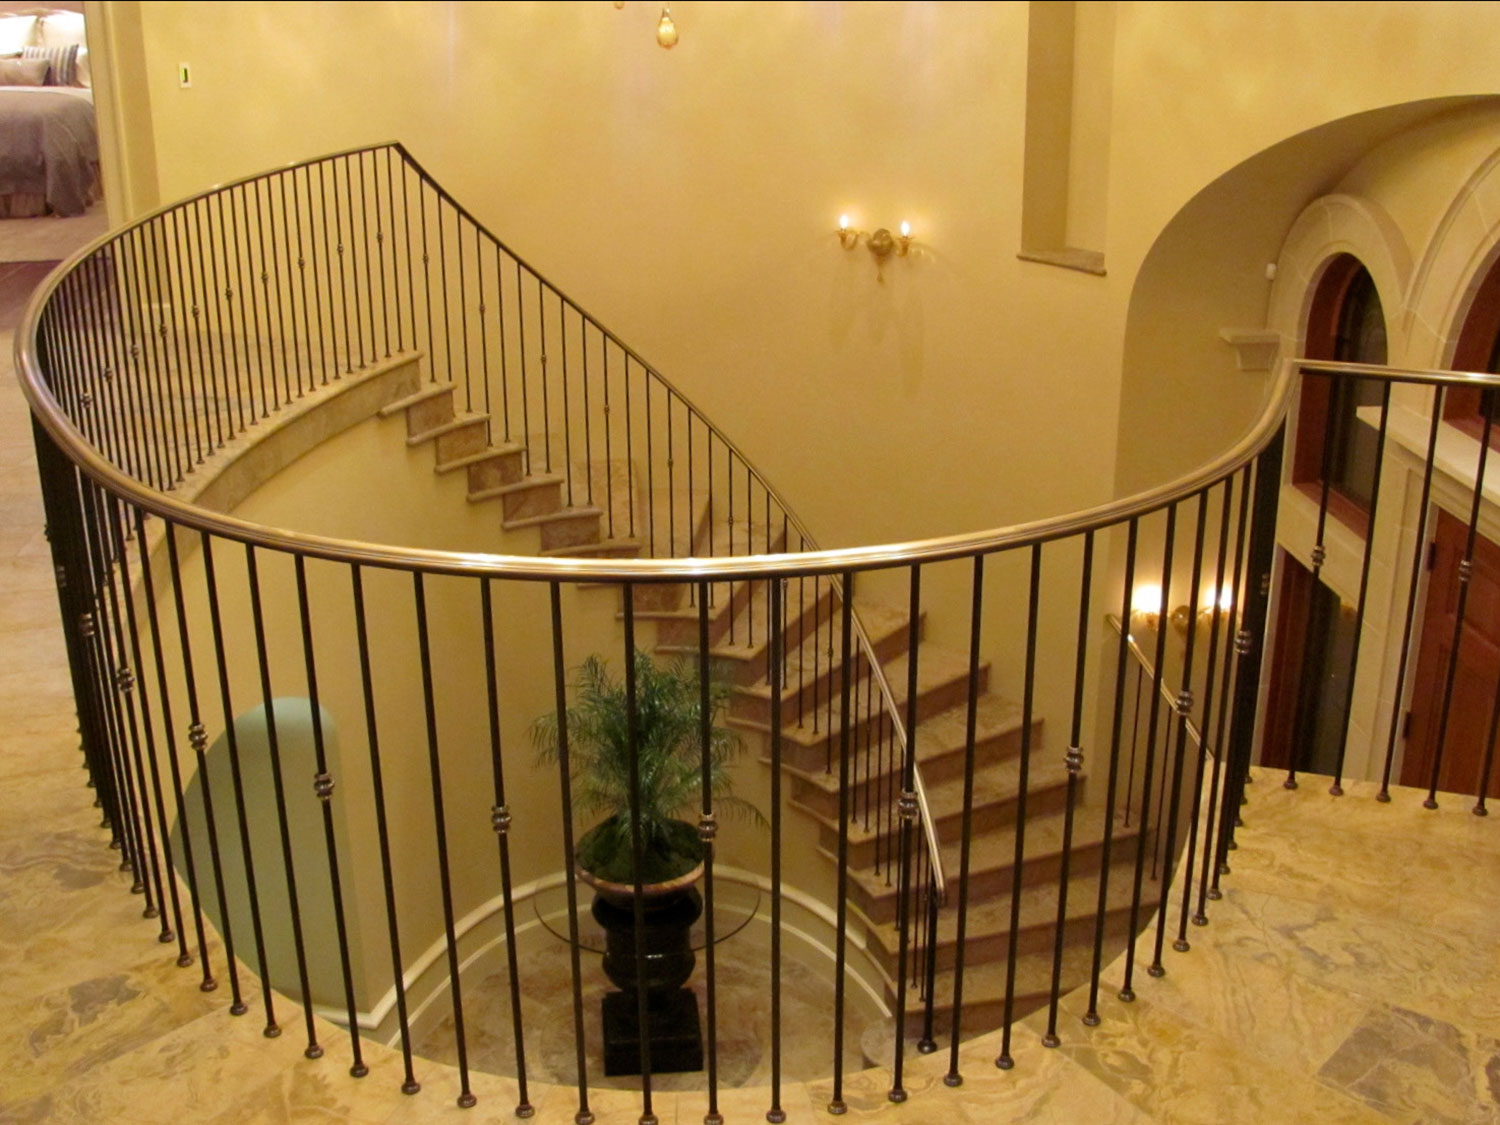 Elegant Pitch and Curved Railing - Upstairs Landing - Seattle, WA